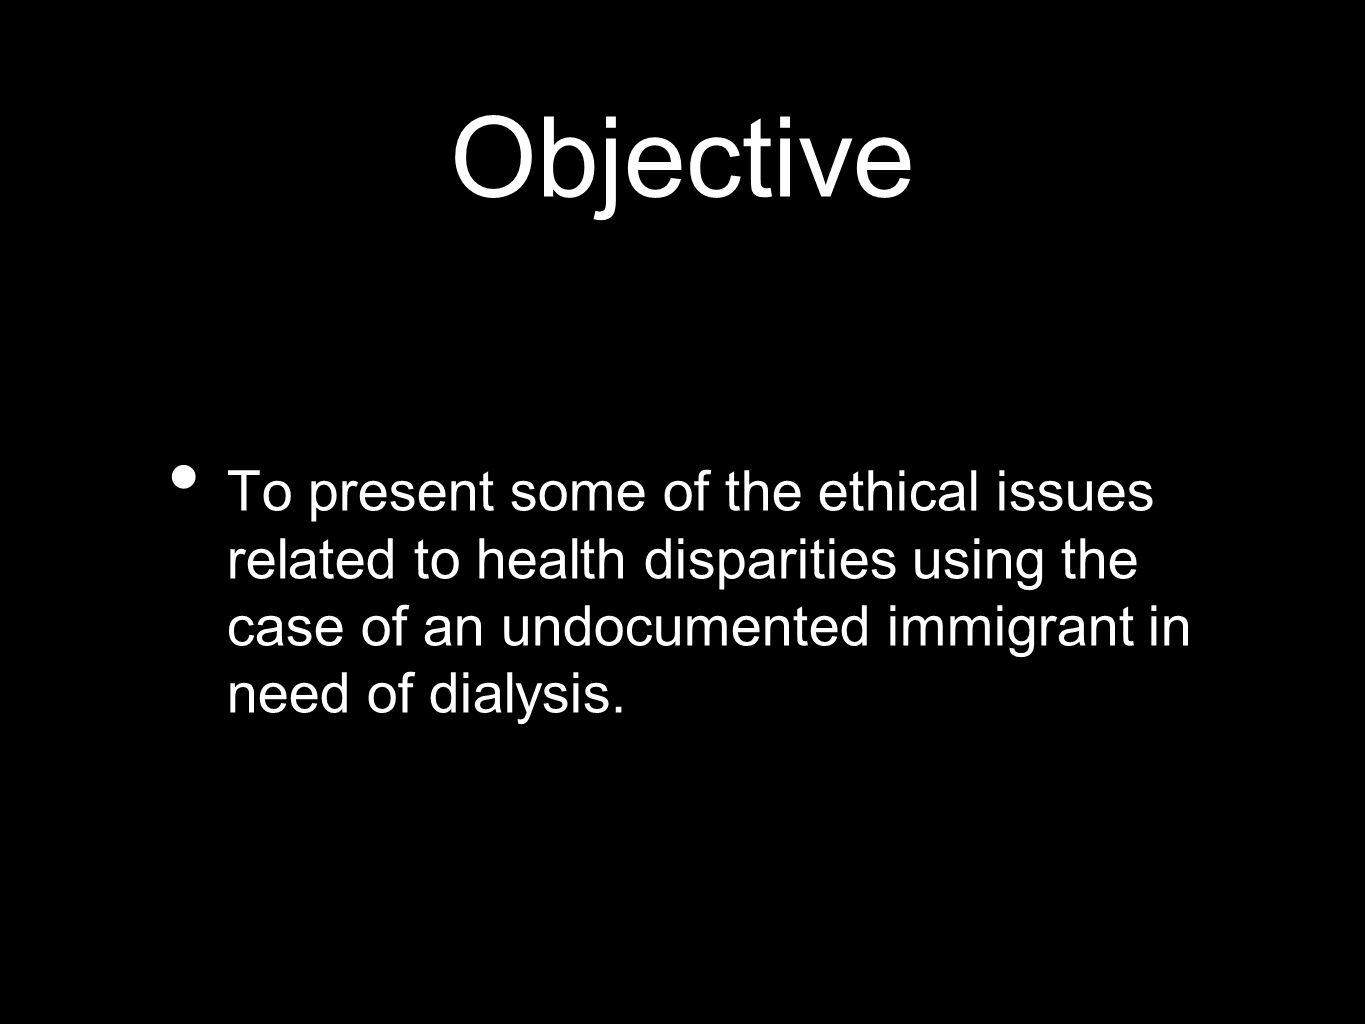 Objective To present some of the ethical issues related to health disparities using the case of an undocumented immigrant in need of dialysis.